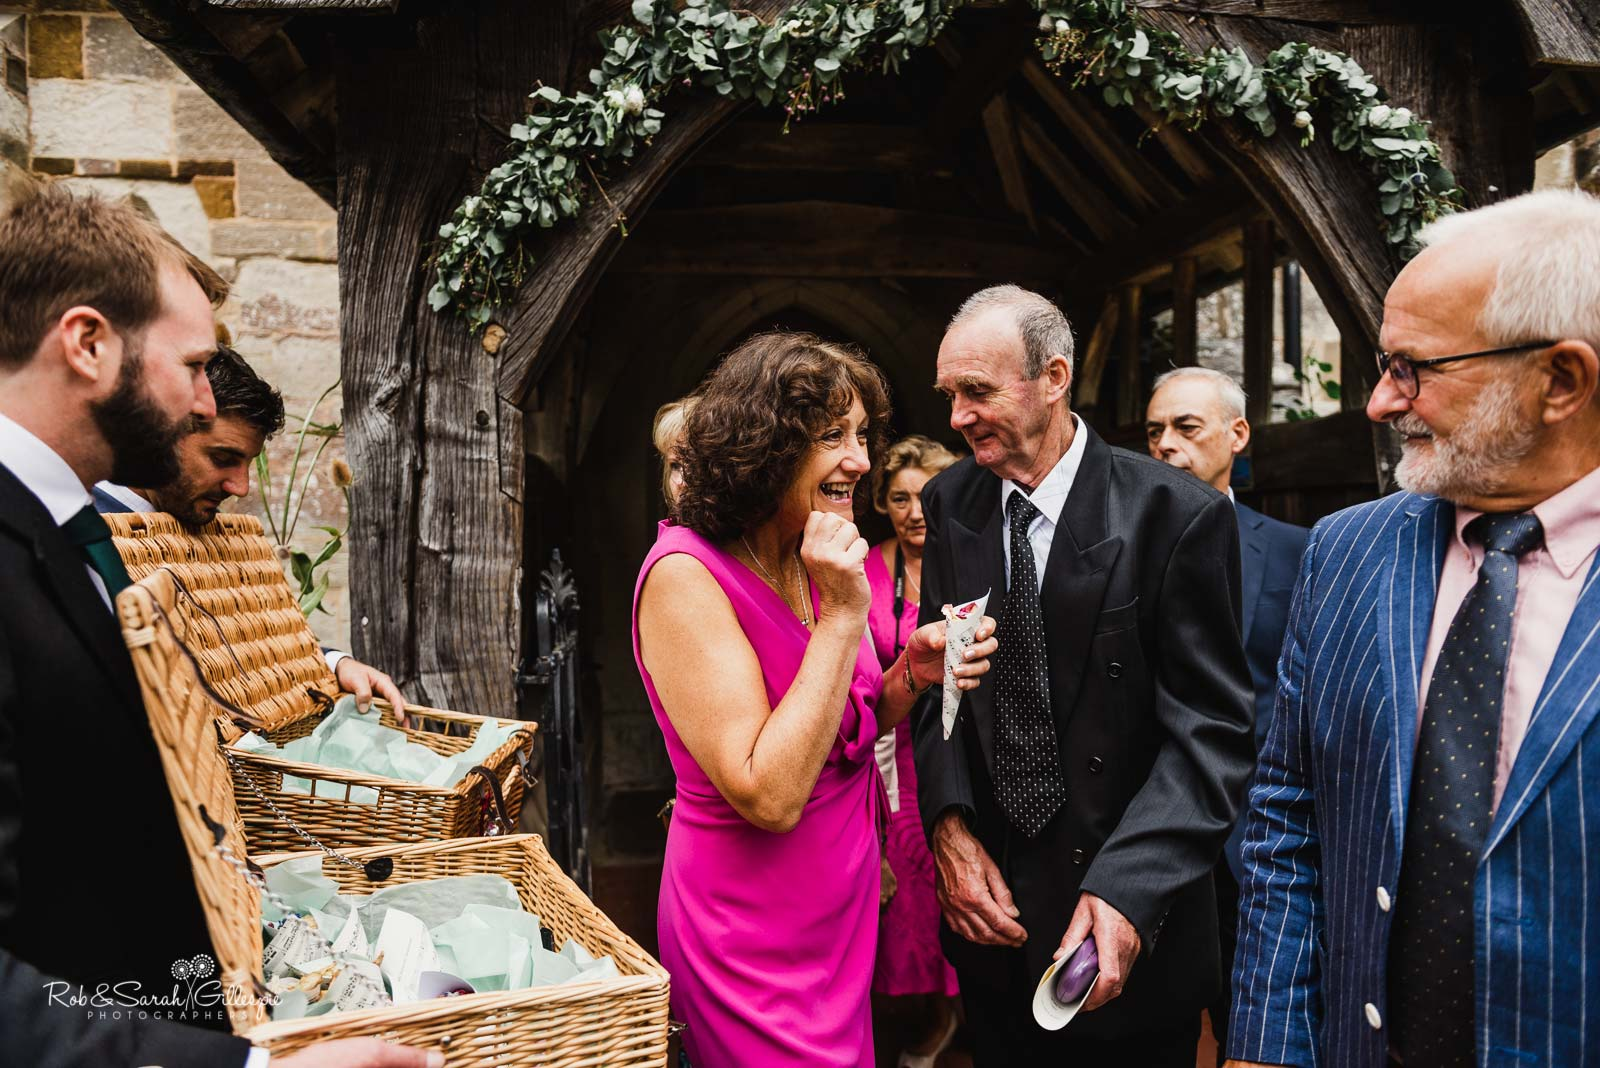 Wedding guests at St Giles church Packwood